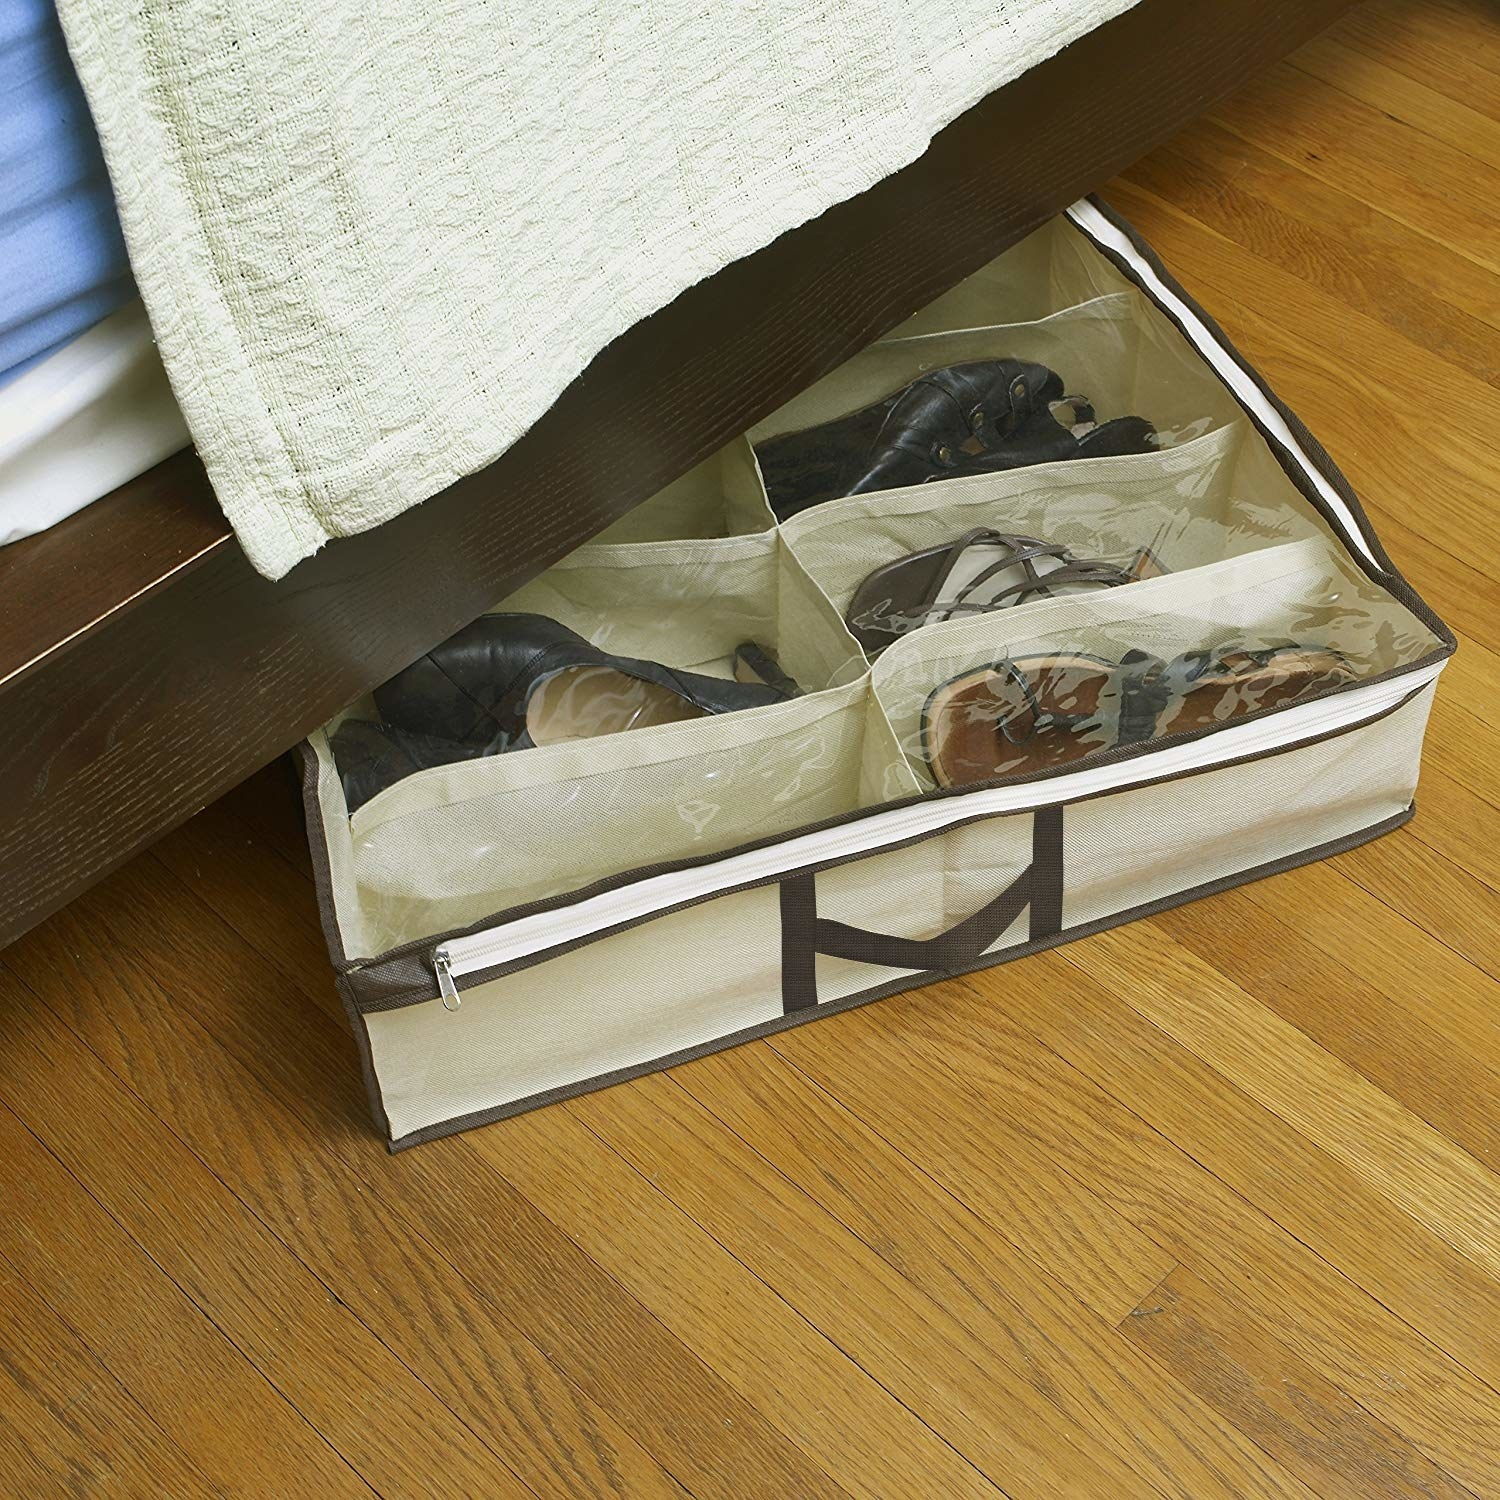 a bed with a shoe organizer peaking out from underneath with a clear lid